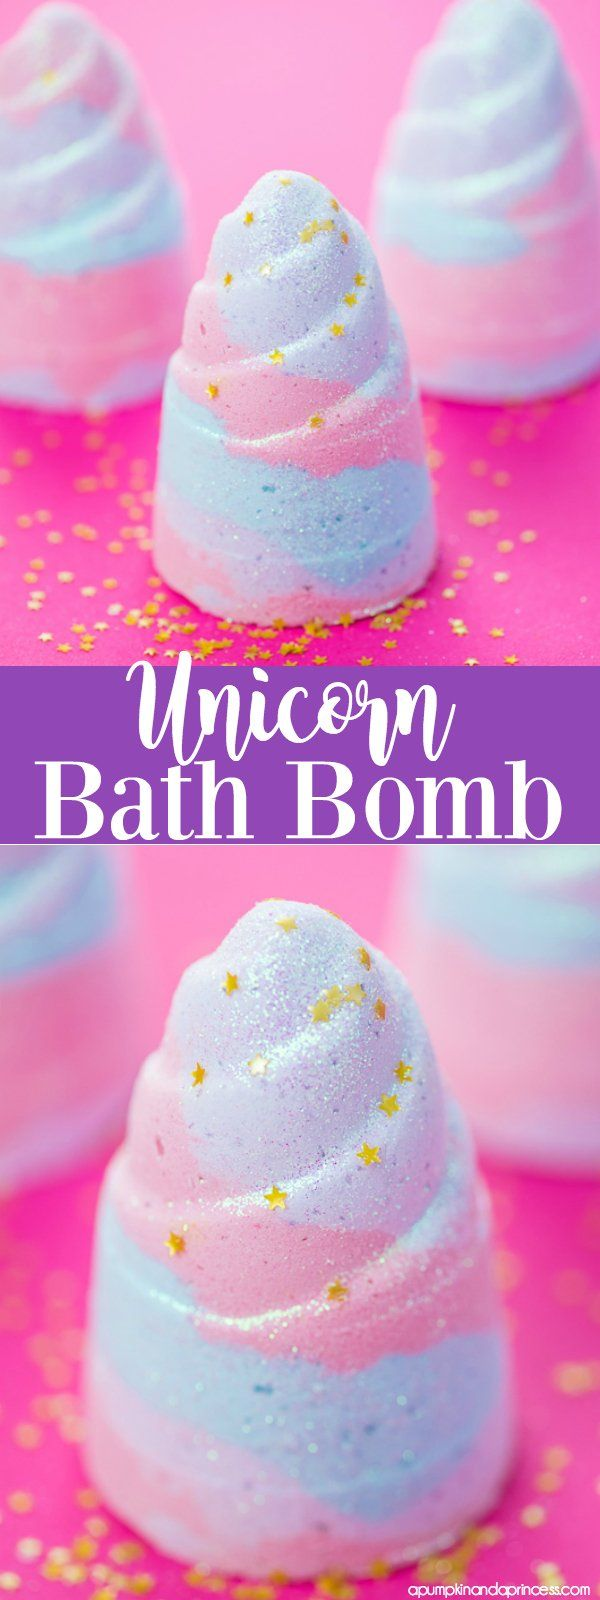 DIY Unicorn Bath Bomb - how to make a glitter unicorn horn bath bomb! Today I have a new bath bomb to share with you guys that plays into the unicorn trend. This DIY Unicorn bath bomb is made in a popsicle mold with multiple layered colors and cosmetic-grade glitter. I've made a lot of bath bombs over the years but this one is definitely ranking in my top 5. The unicorn shape is so fun and it makes a great handmade gift for friends!